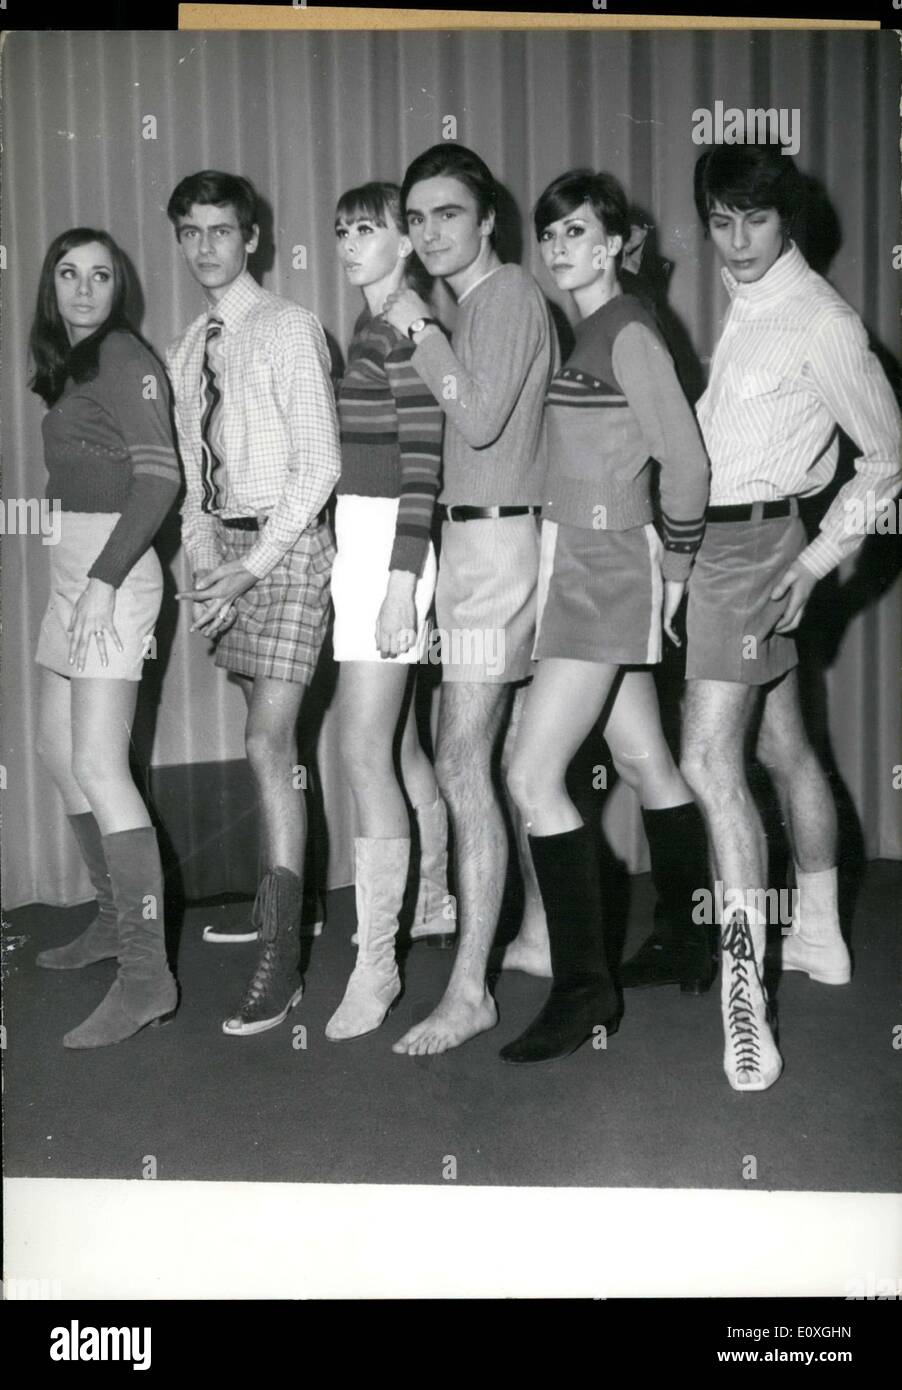 Dec. 06, 1966 - These Munich Residents Think These Mini-skirts Are ...